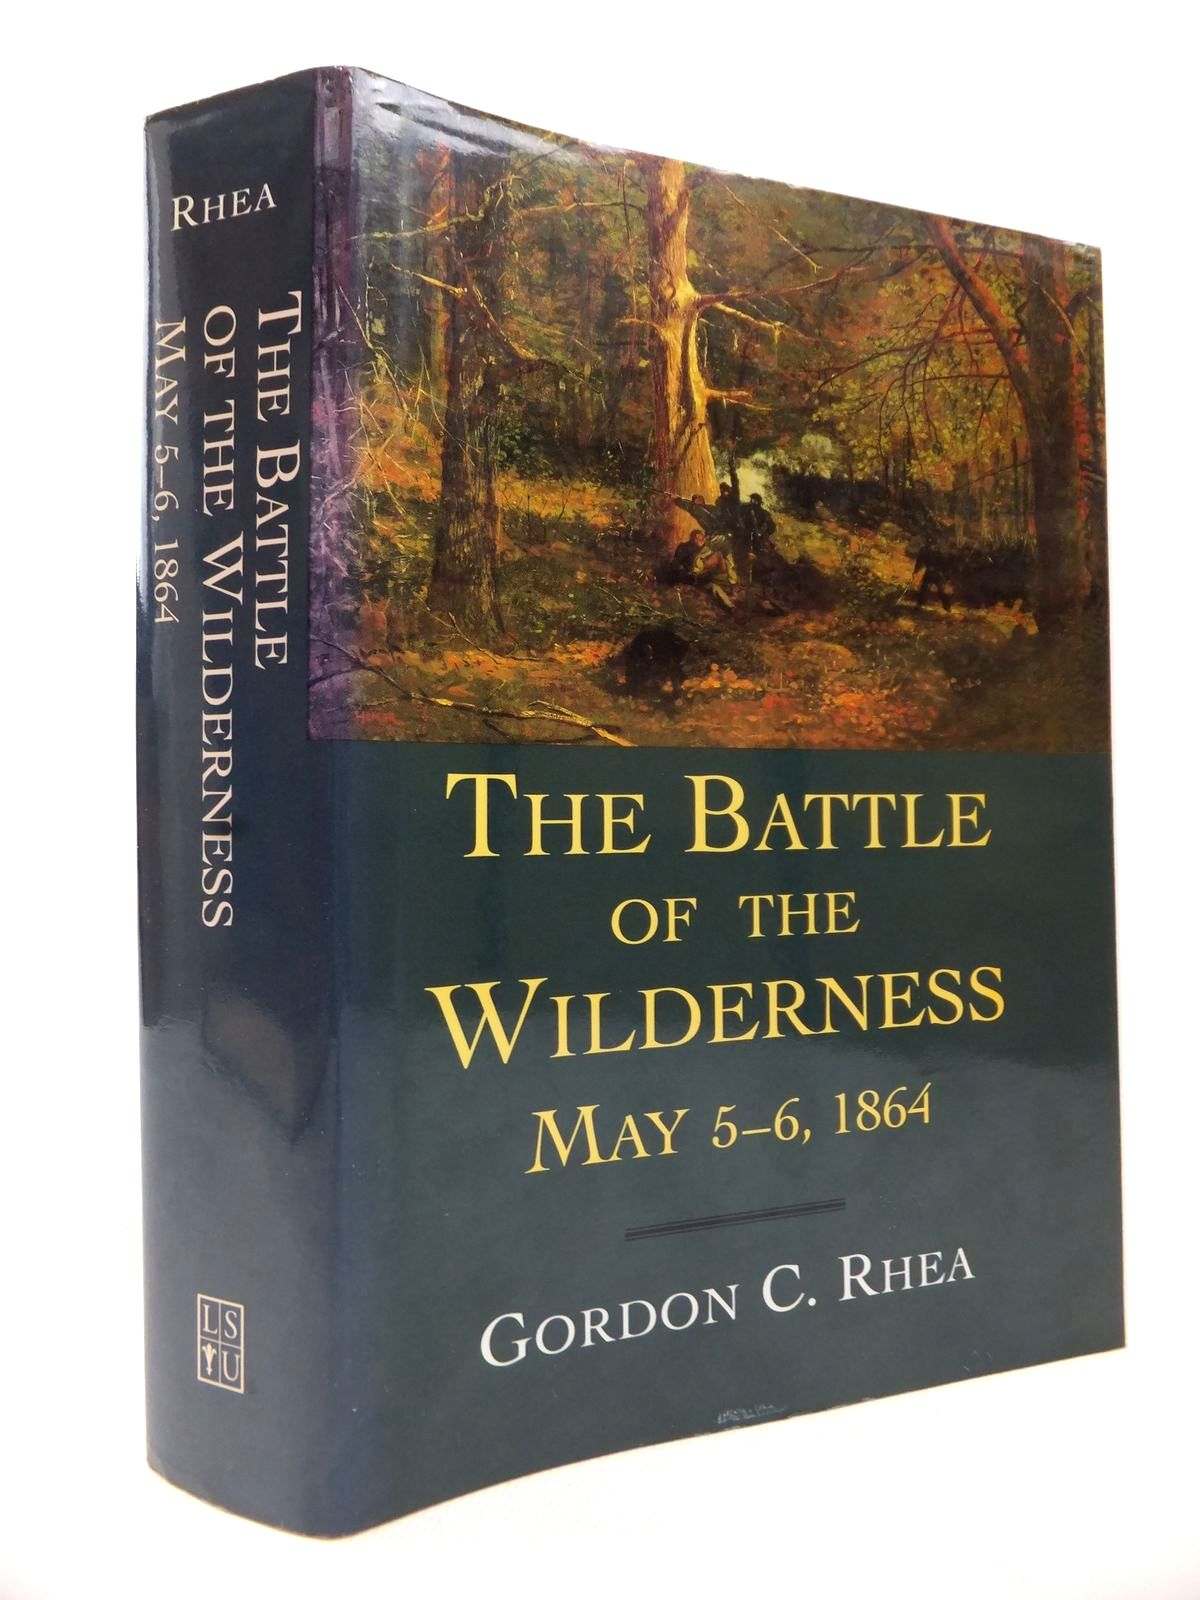 Photo of THE BATTLE OF THE WILDERNESS: MAY 5-6 1864 written by Rhea, Gordon C. published by Louisiana State University Press (STOCK CODE: 1813633)  for sale by Stella & Rose's Books